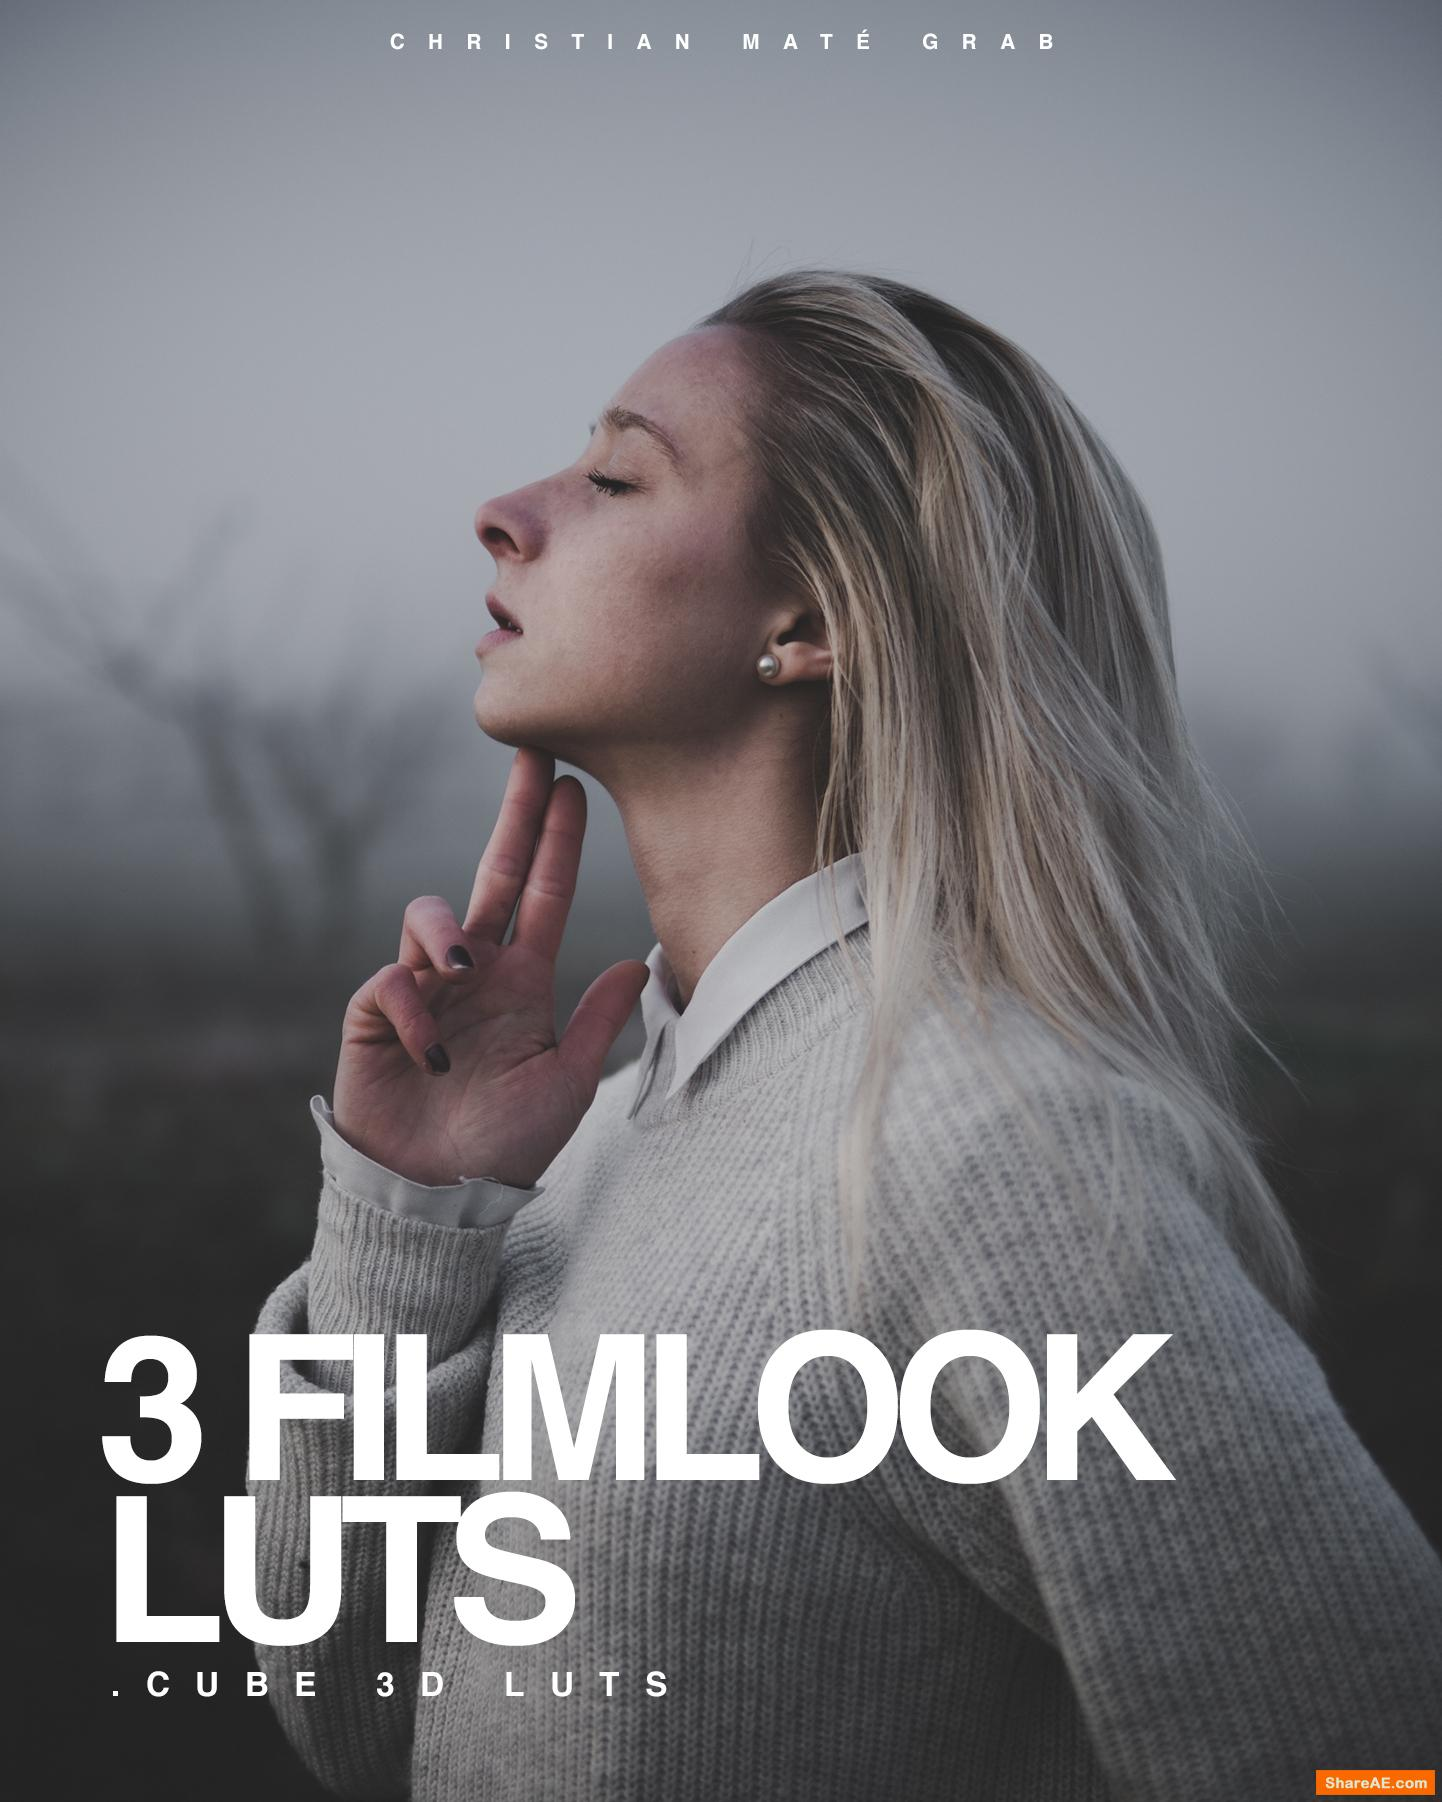 3 FILMLOOK LUTS FOR SONY Cine4 - Sellfy